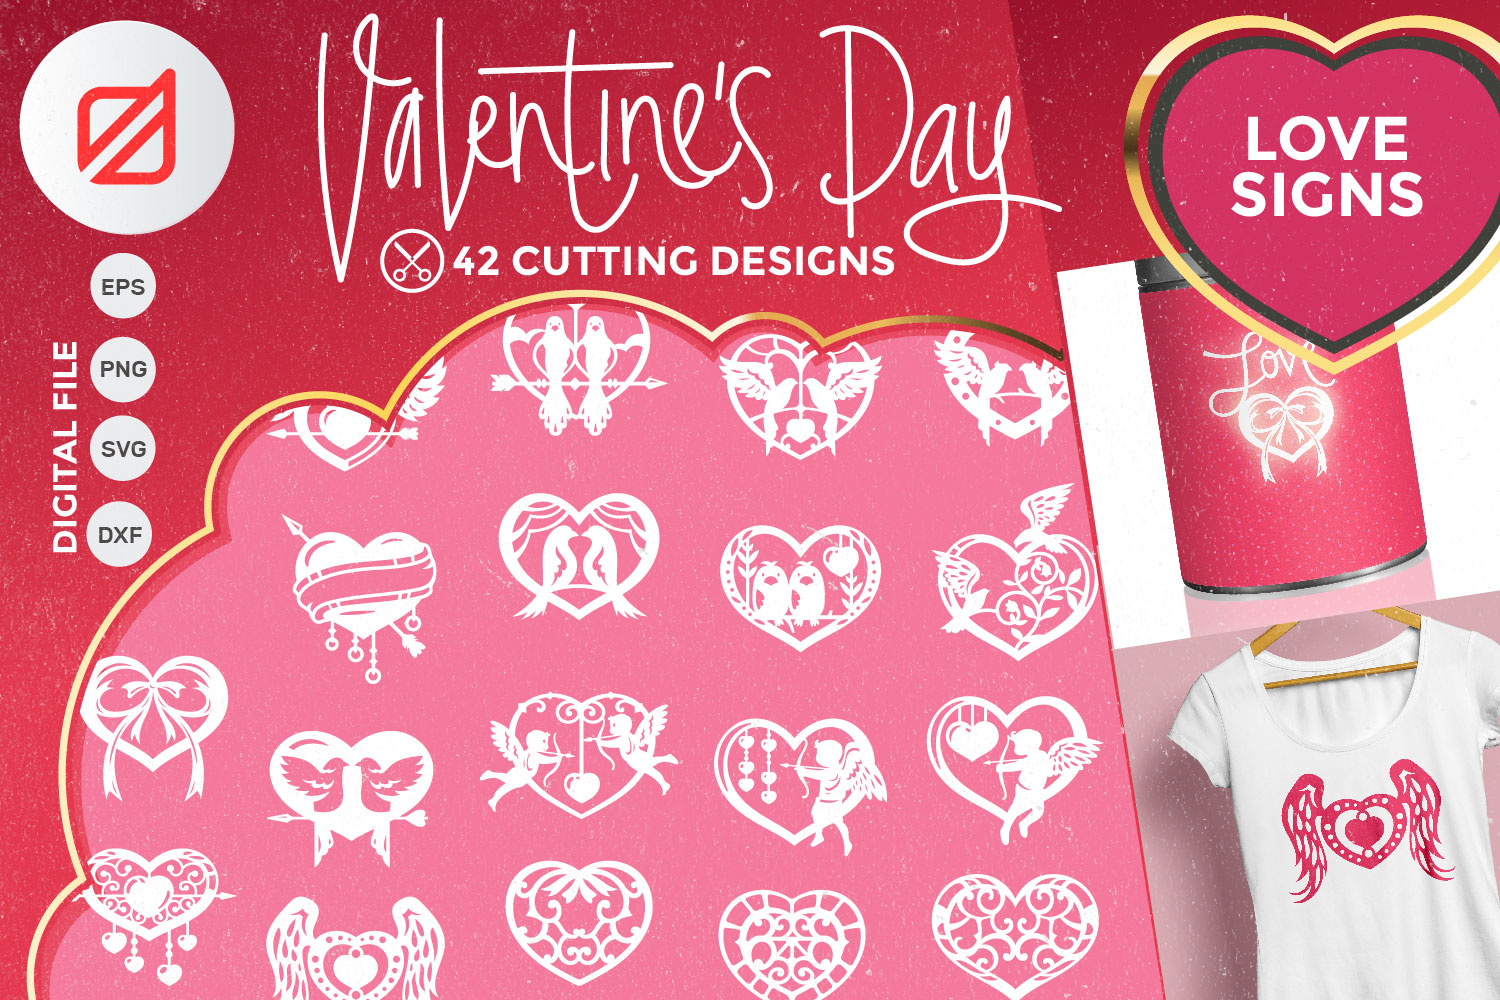 Valentine's Day Love Signs Cutting File SVG example image 1